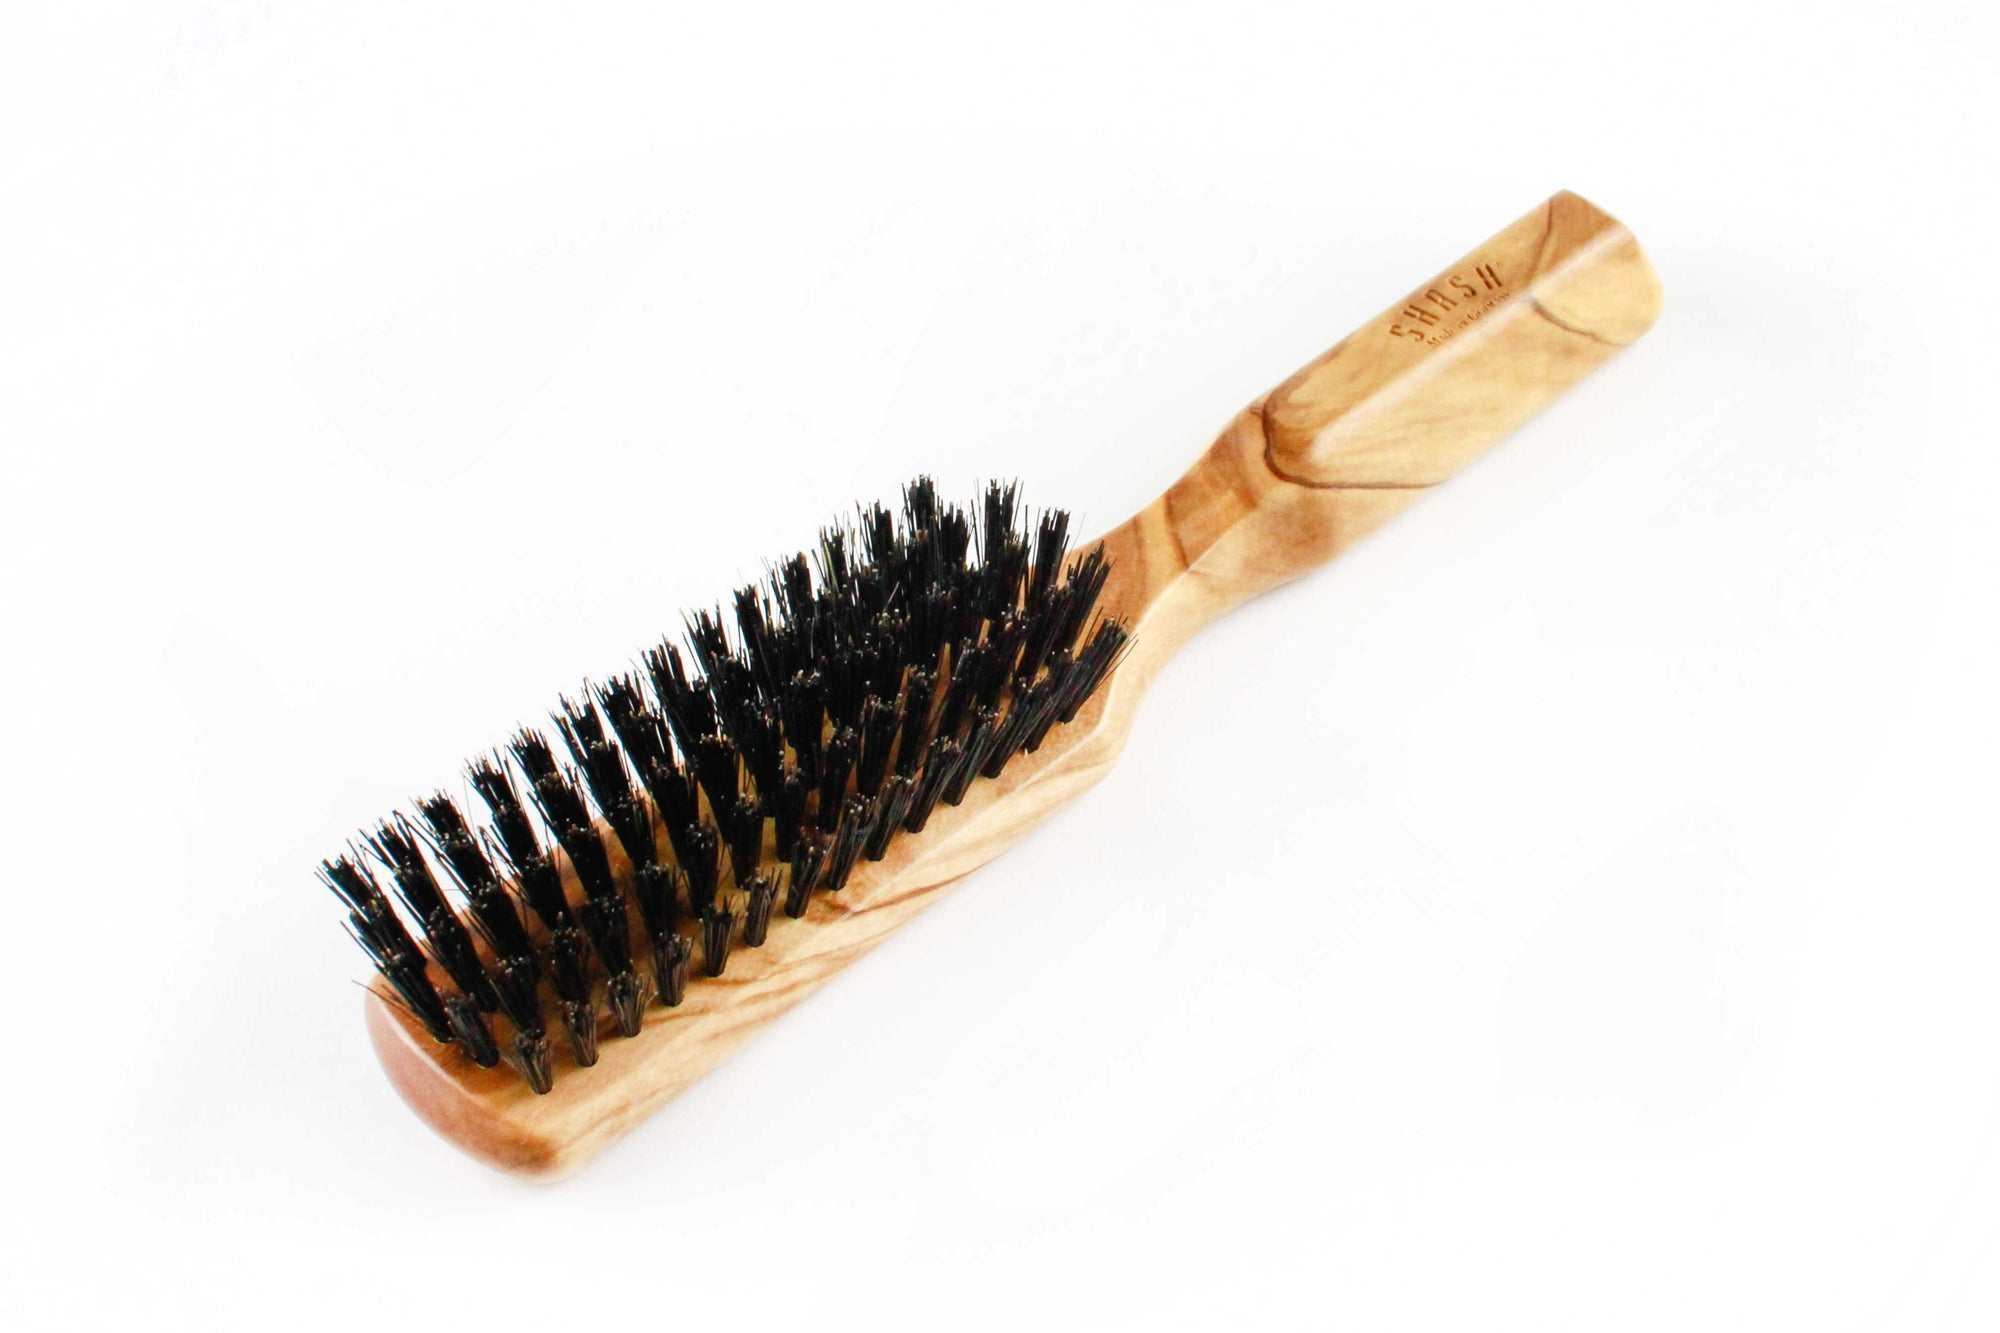 THE TIDY CRAFTSMAN BOAR BRISTLE HAIR BRUSH